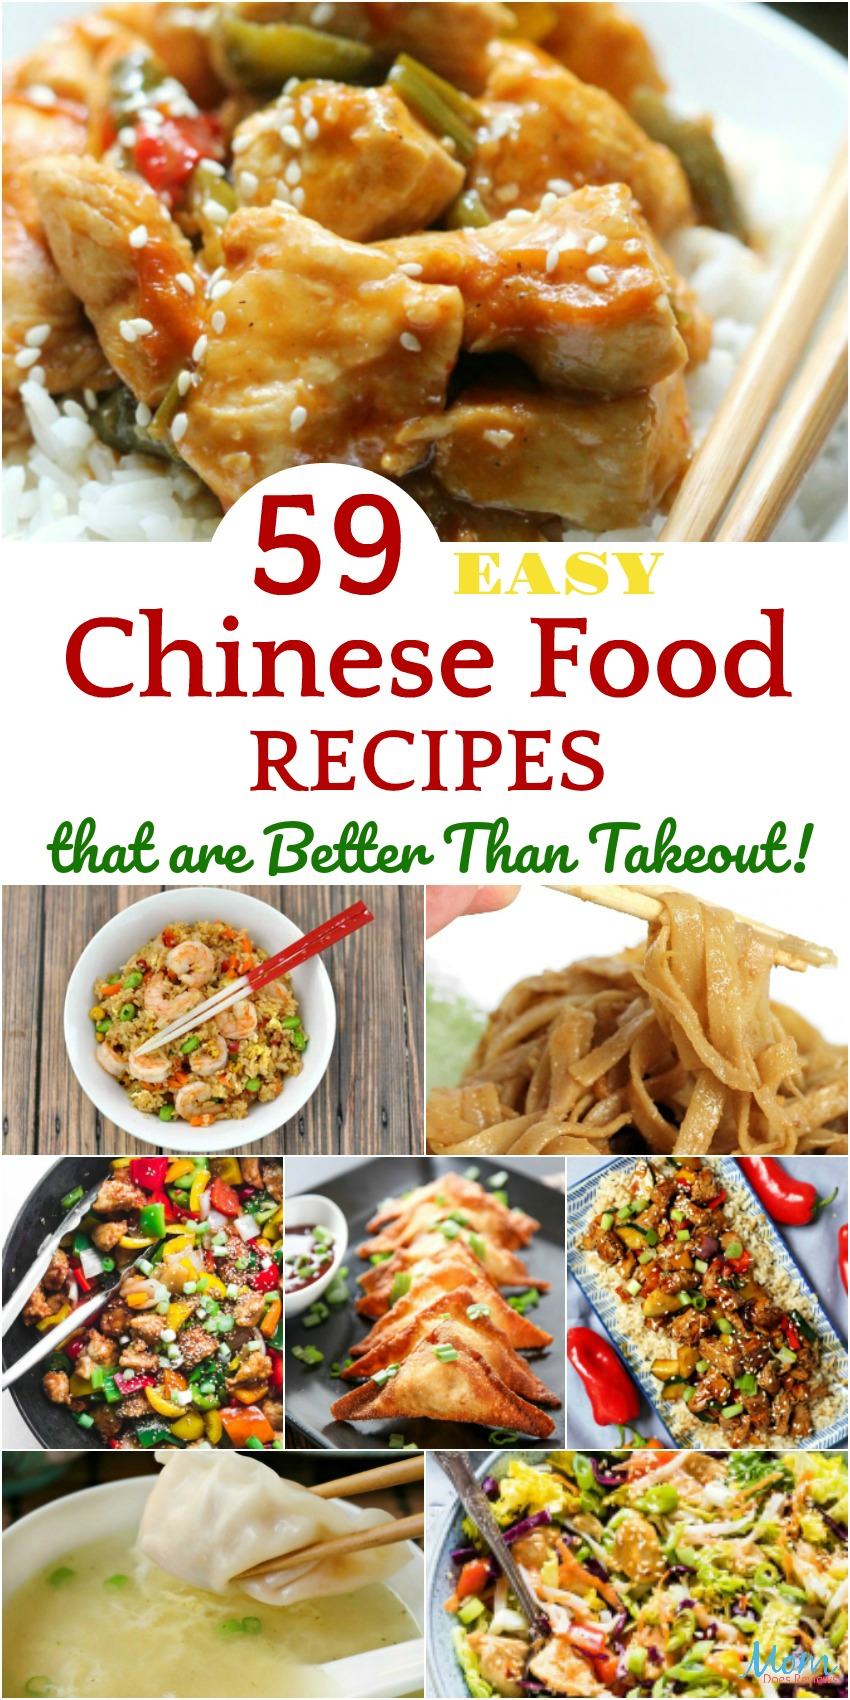 59 Easy Chinese Food Recipes That Are Better Than Takeout